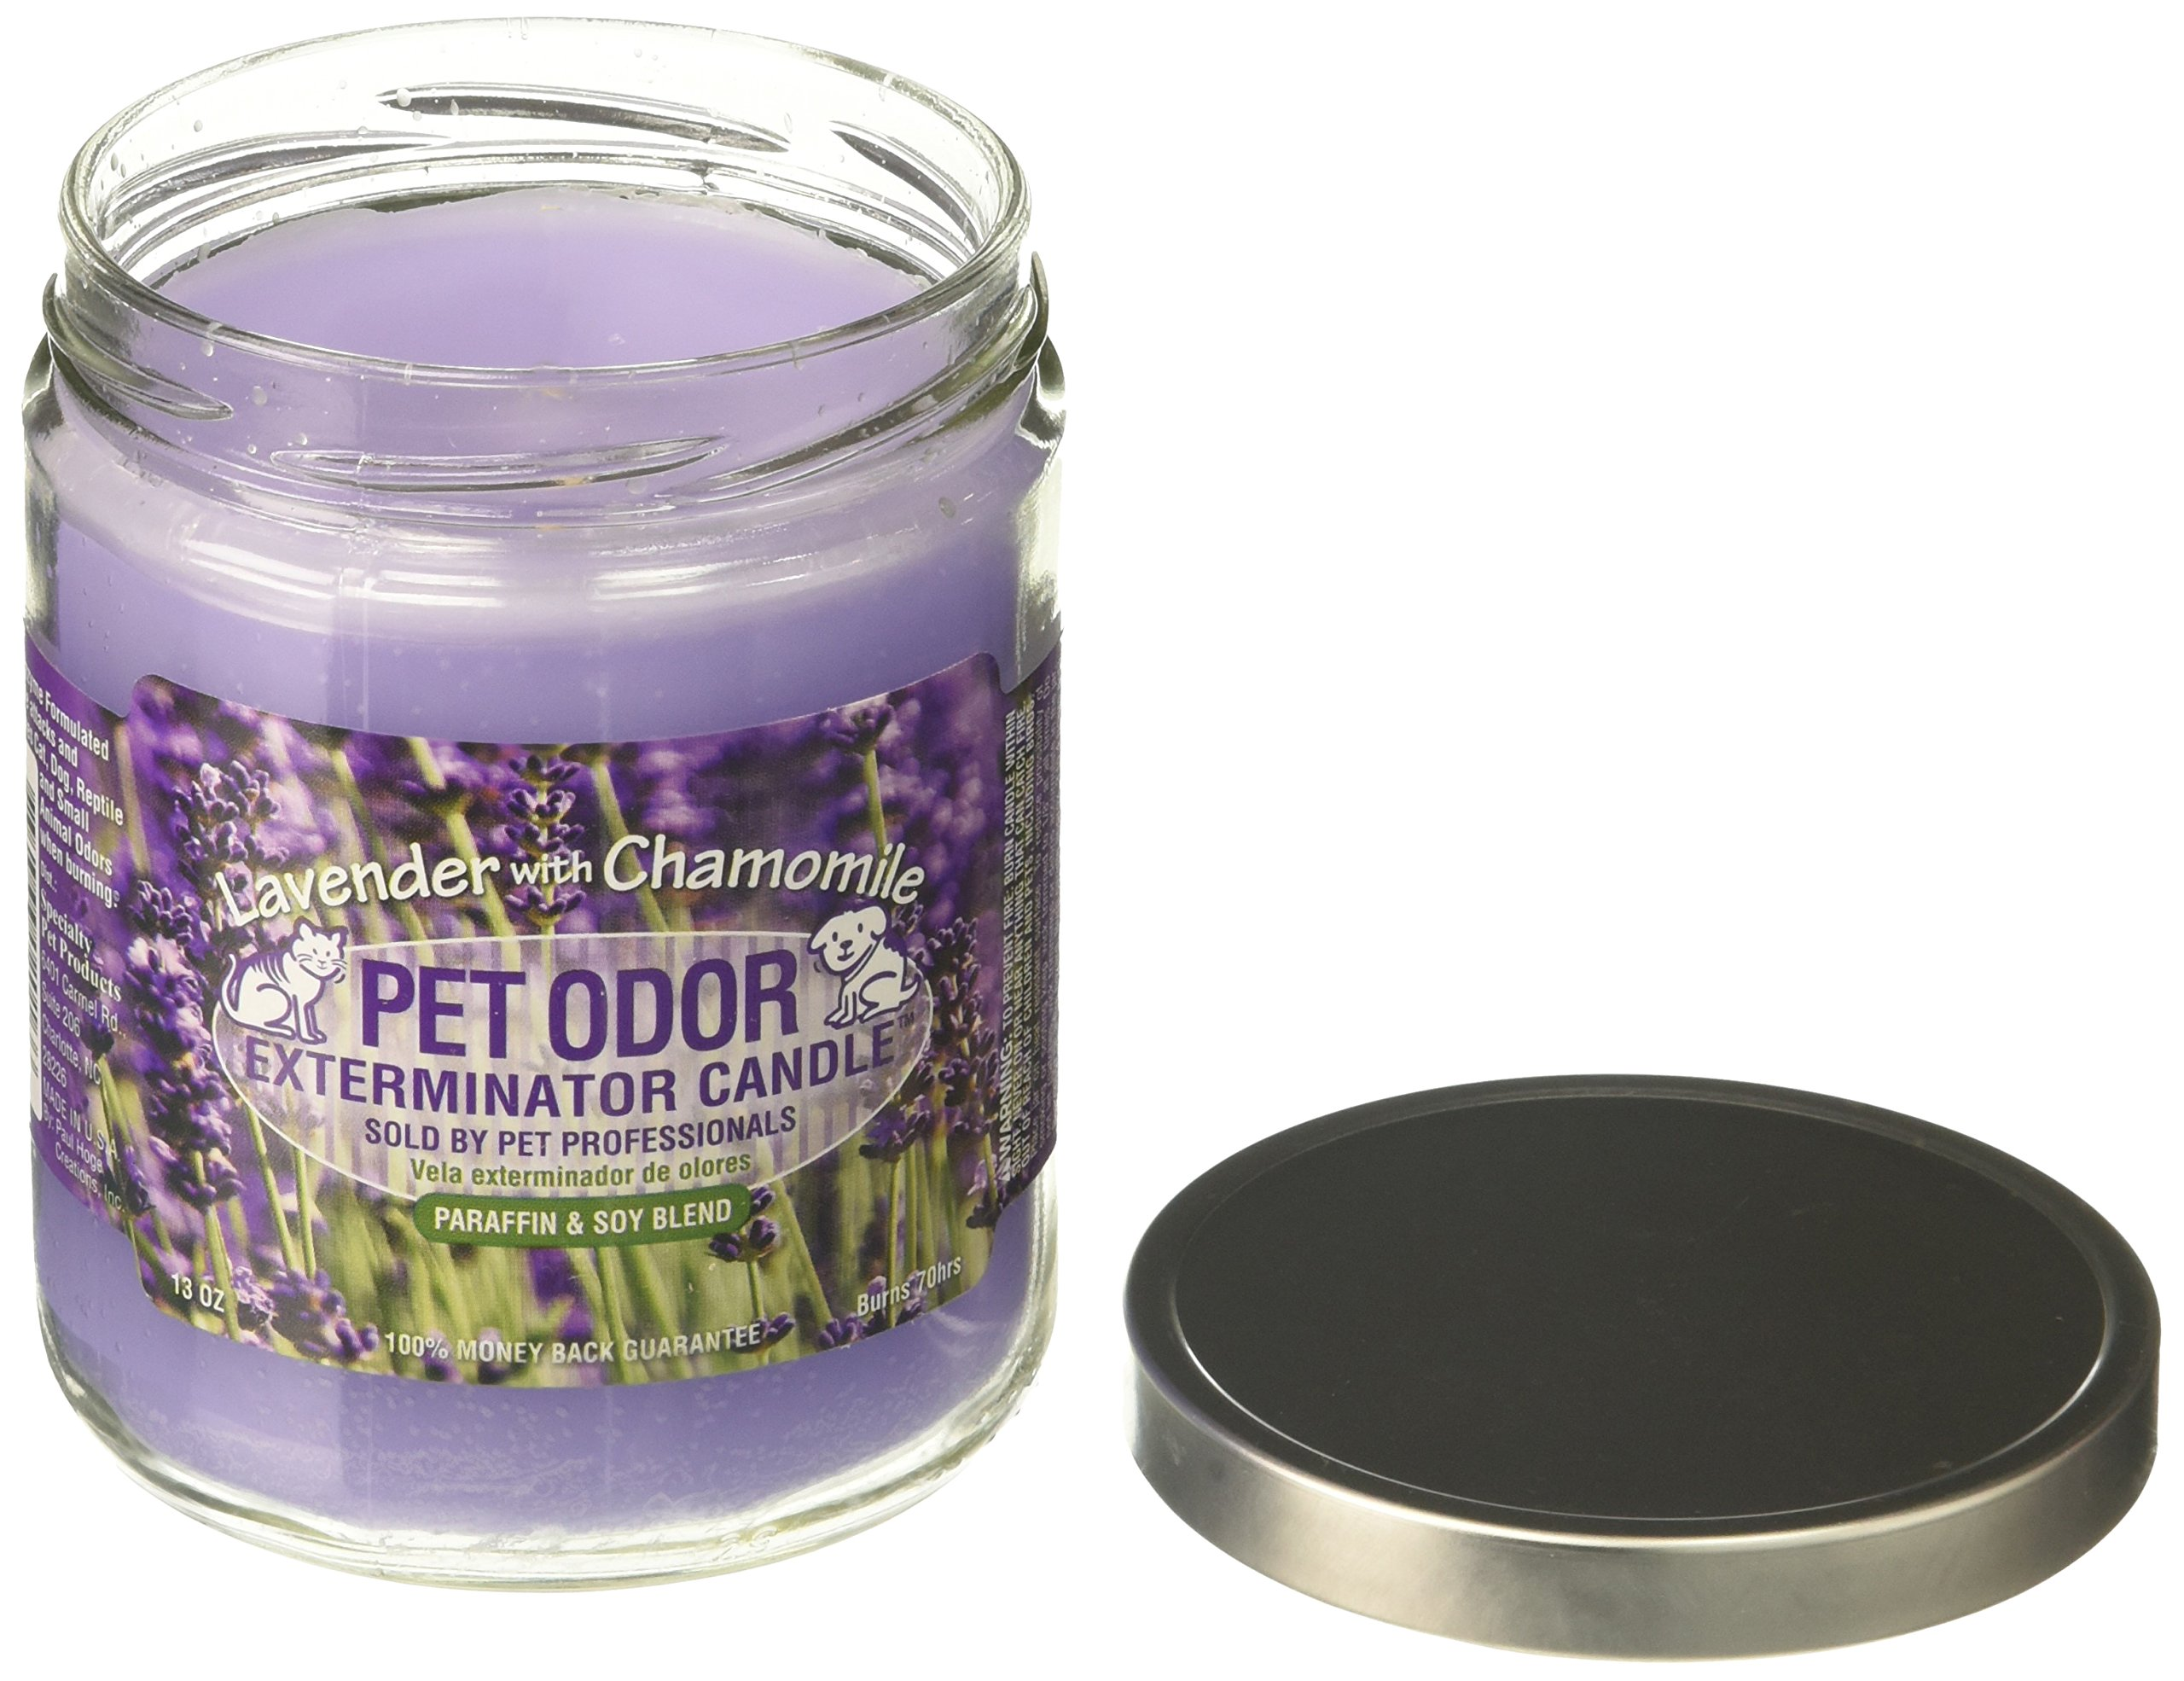 Specialty Pet Products Pet Odor Exterminator Candle Lavender with Chamomile Jar (13 oz)